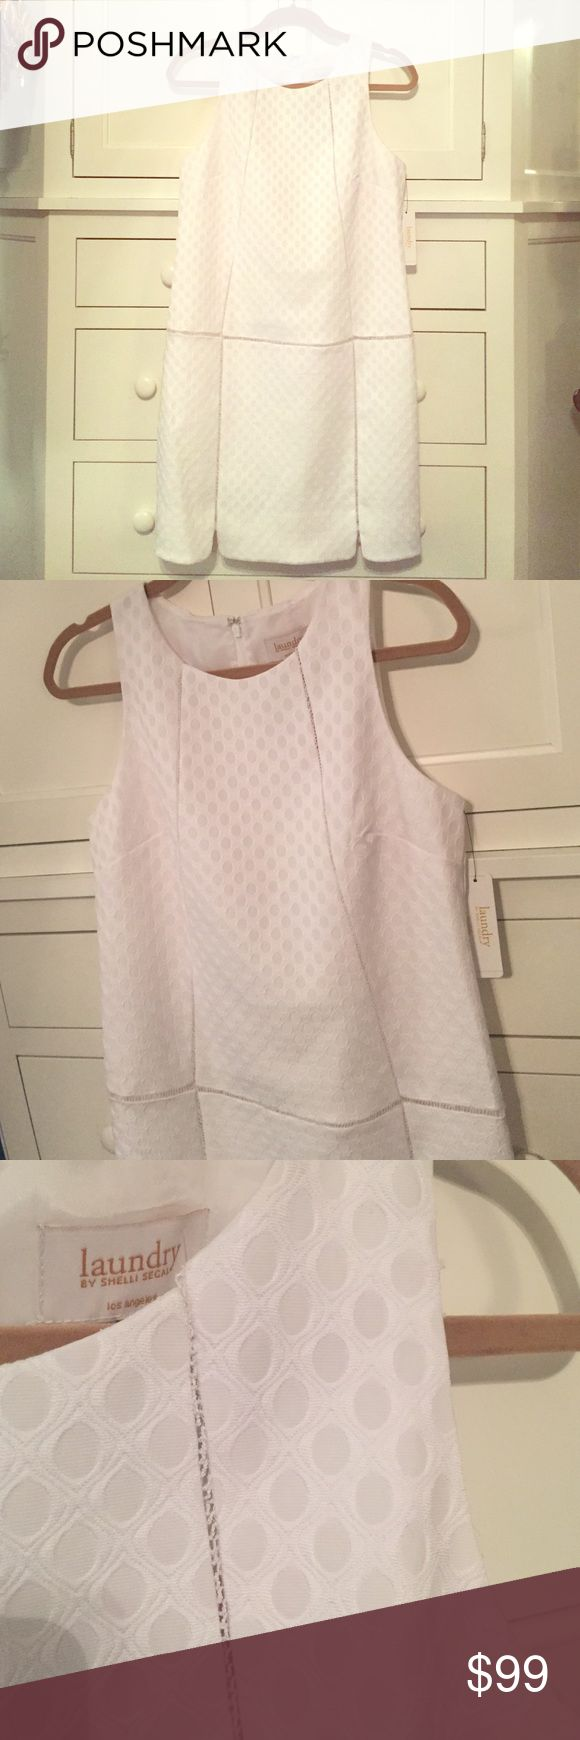 New! Laundry Dress Brand new with tag! Beautiful white eyelet fabric with intimate detail and slightly scalloped hem. In perfect condition Laundry by Shelli Segal Dresses